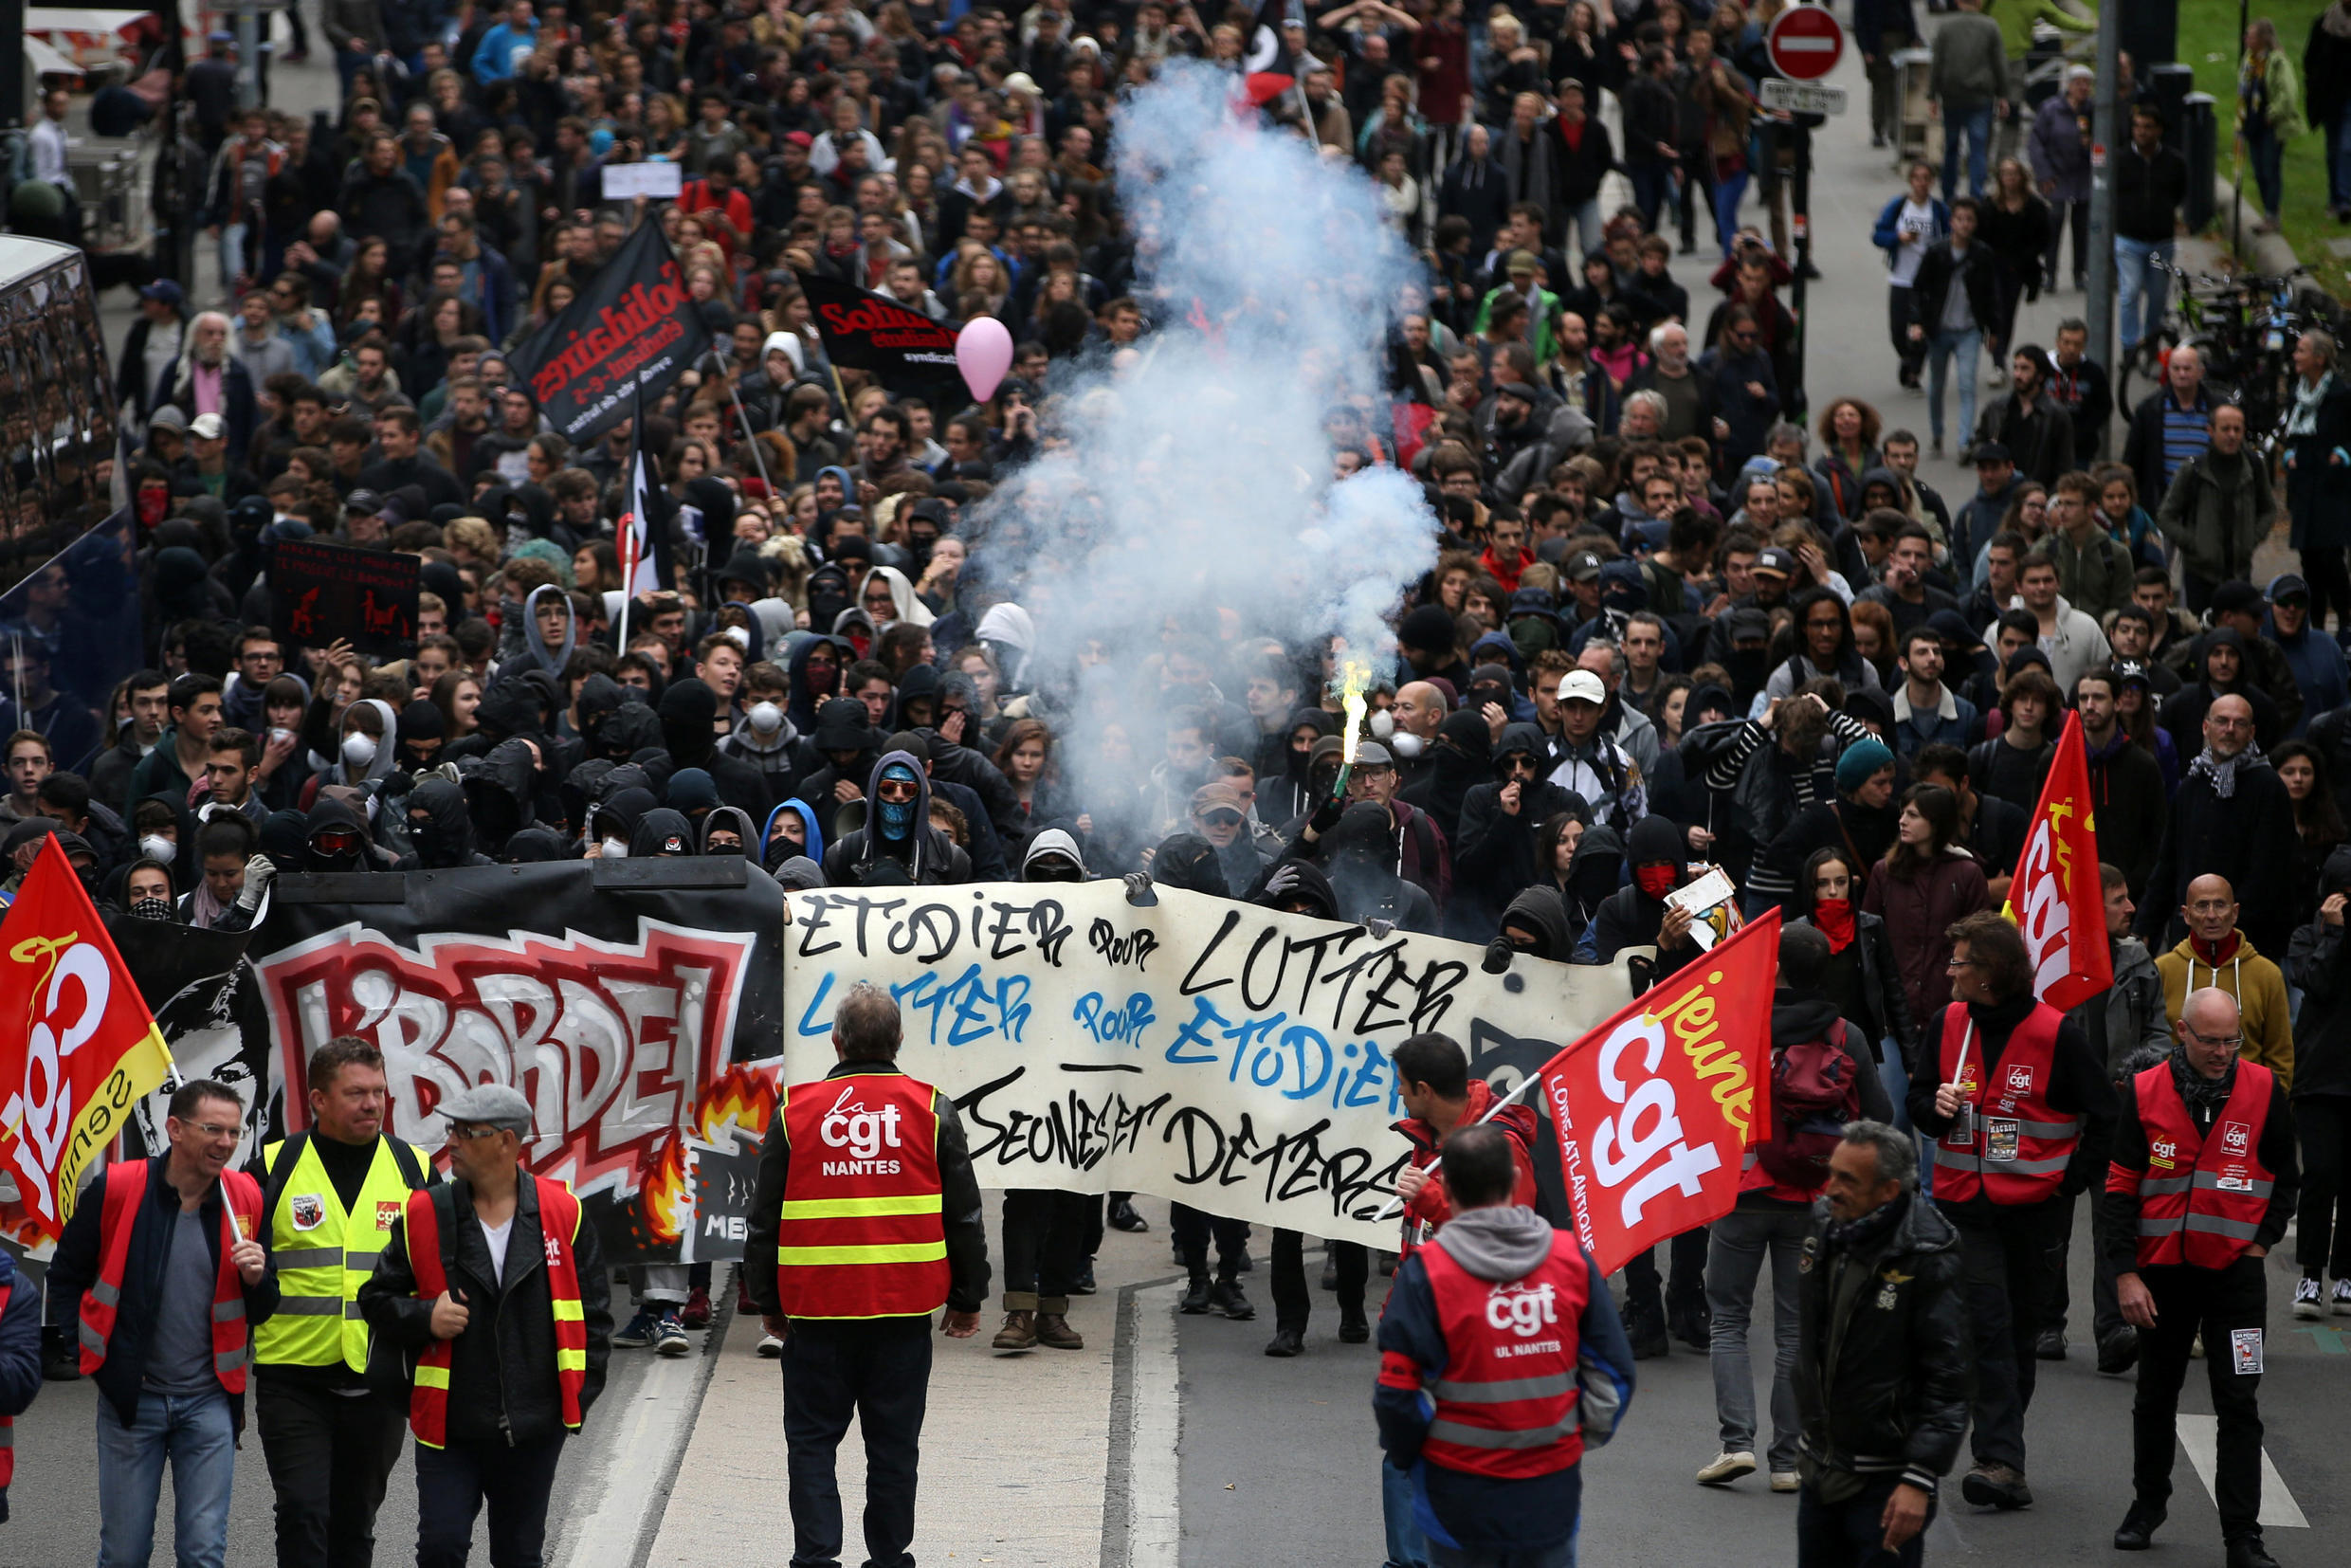 Students,and trade unionists demonstrate in Nantes on Tuesday